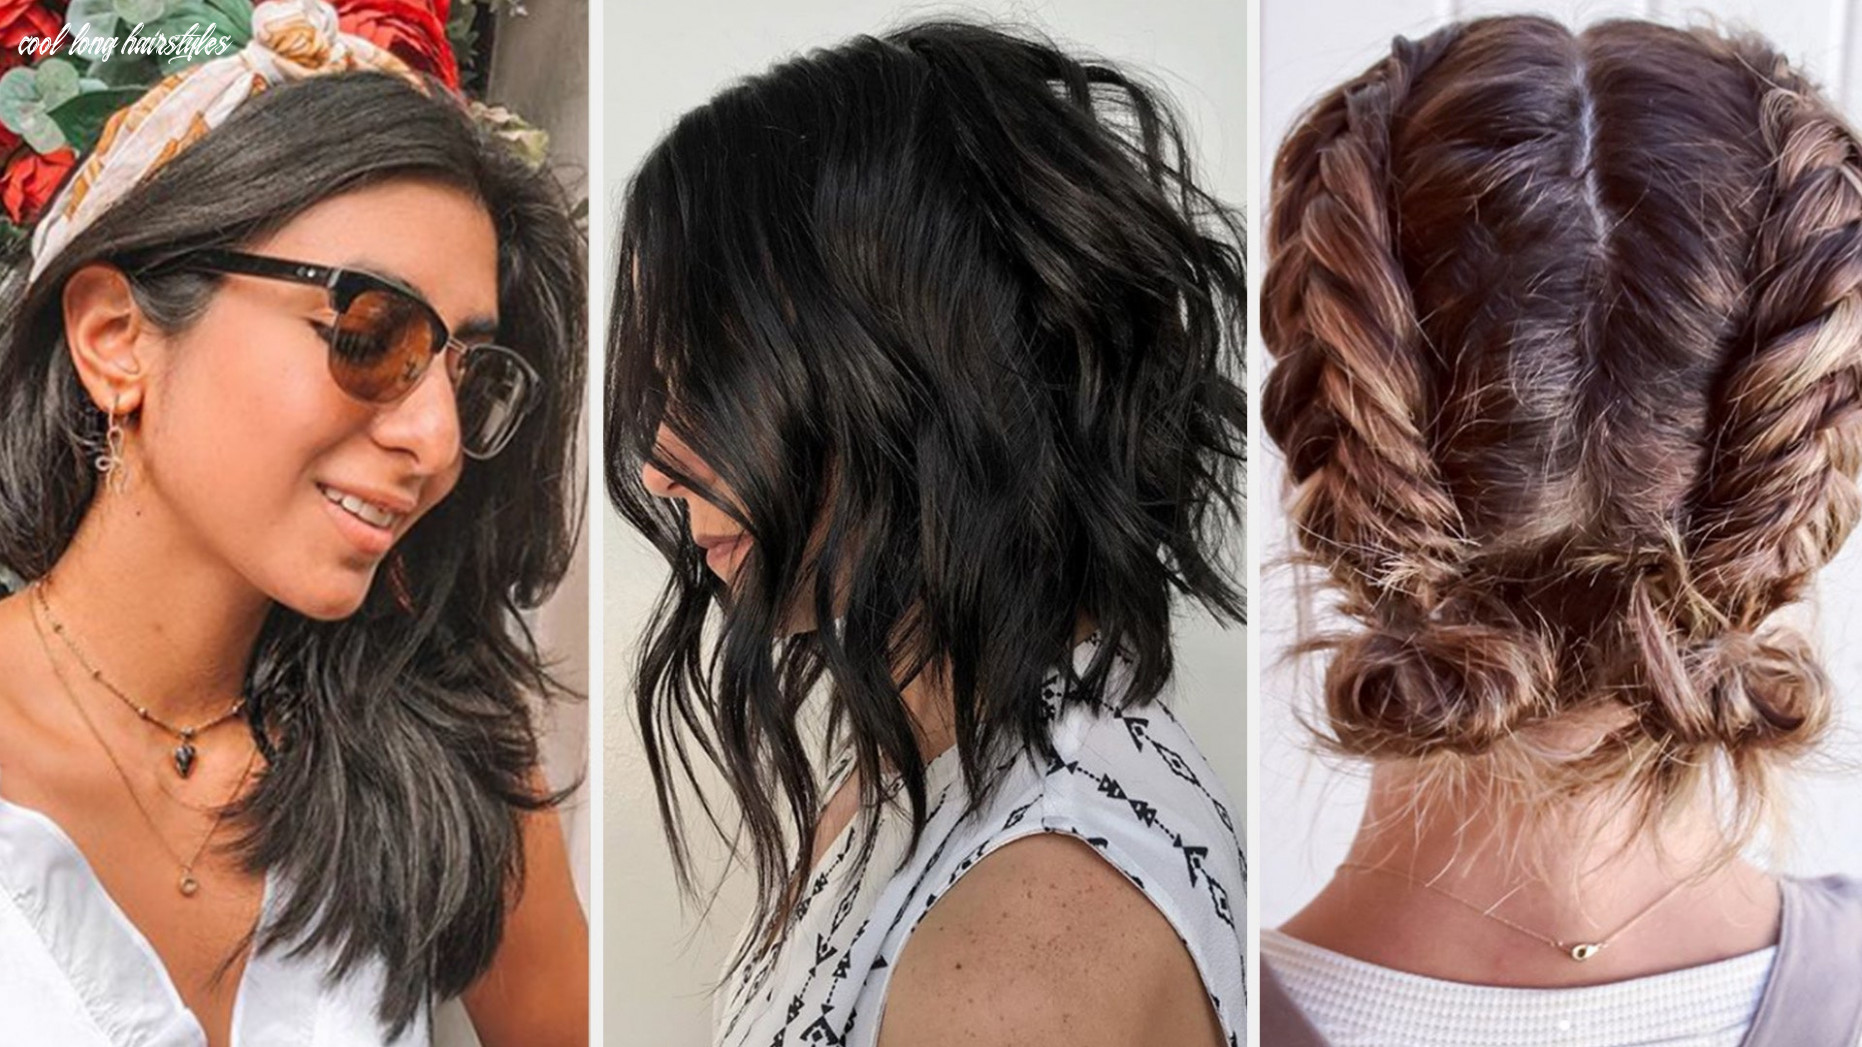 11 Cool Hairstyles for Women: Hairstyles for Short and Long Hair ...